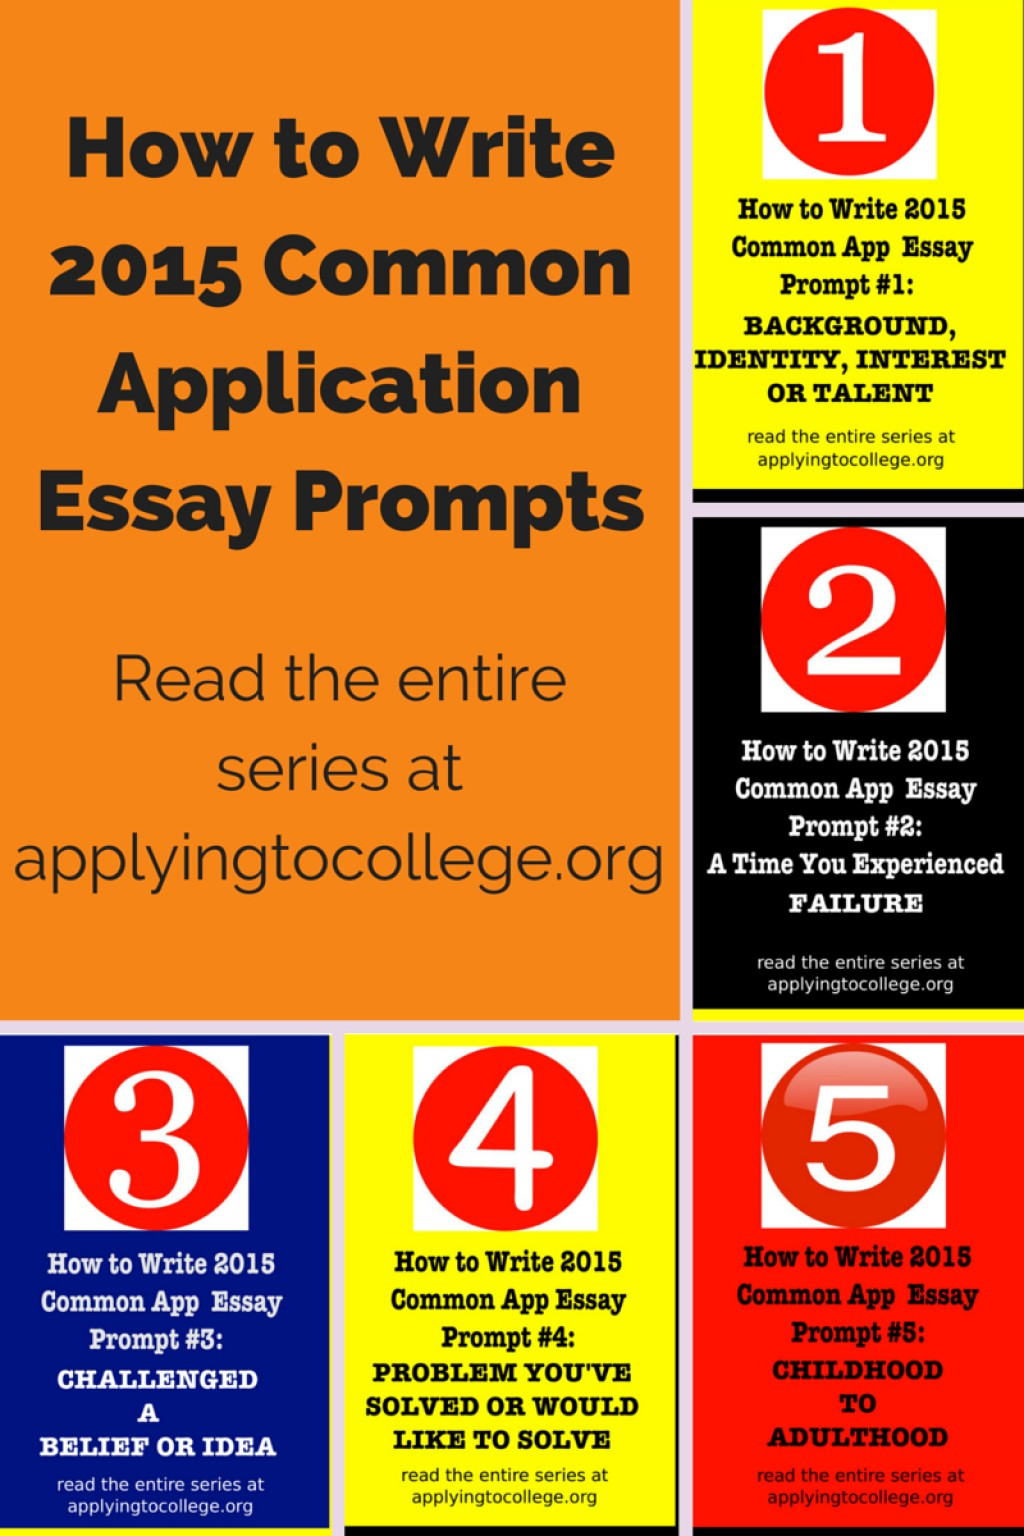 011 Common App Essay Topics Example How To Write Application Prompts Impressive Samples Topic 1 Ideas 2017 Large